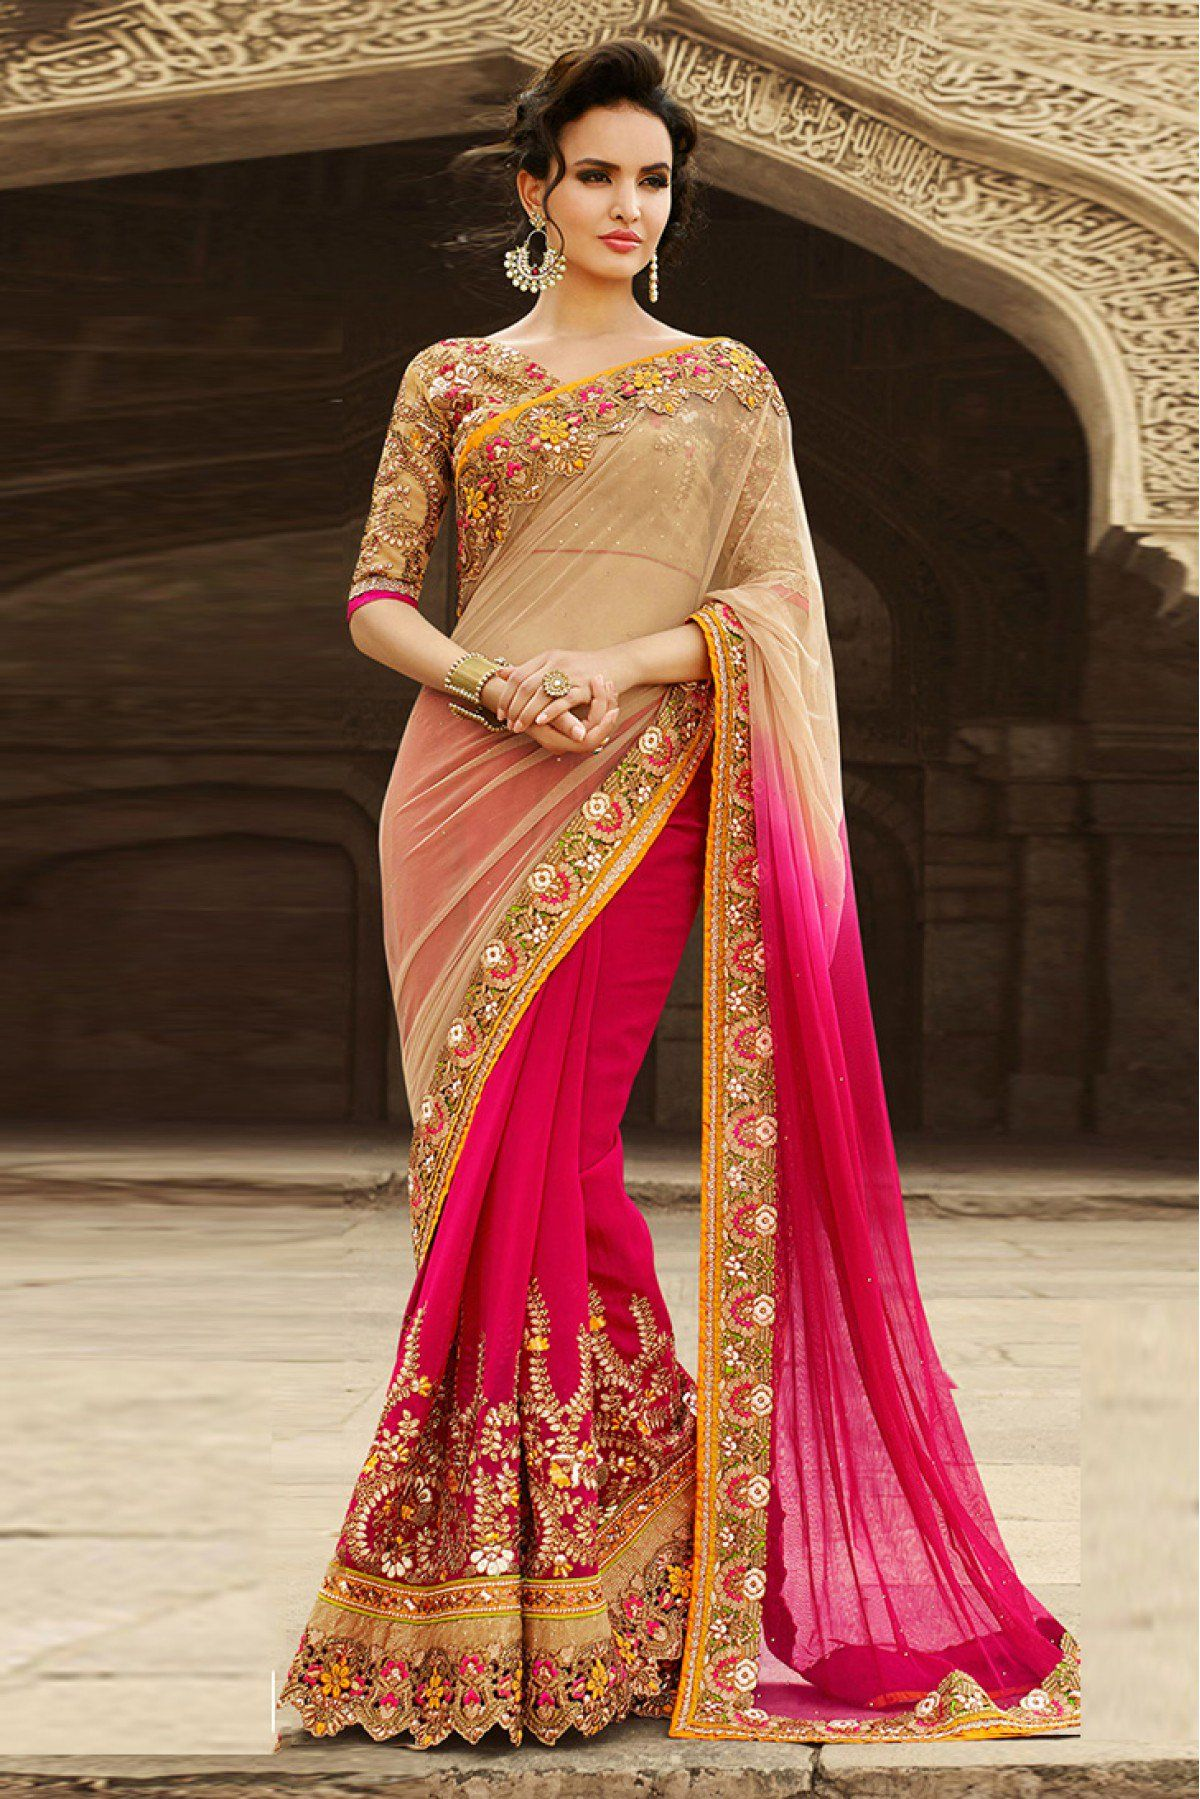 71f6649e95 Buy Half N Half Georgette Saree In Beige And Pink Colour for women @  ninecolours.com. Worldwide Free Shipping Available!